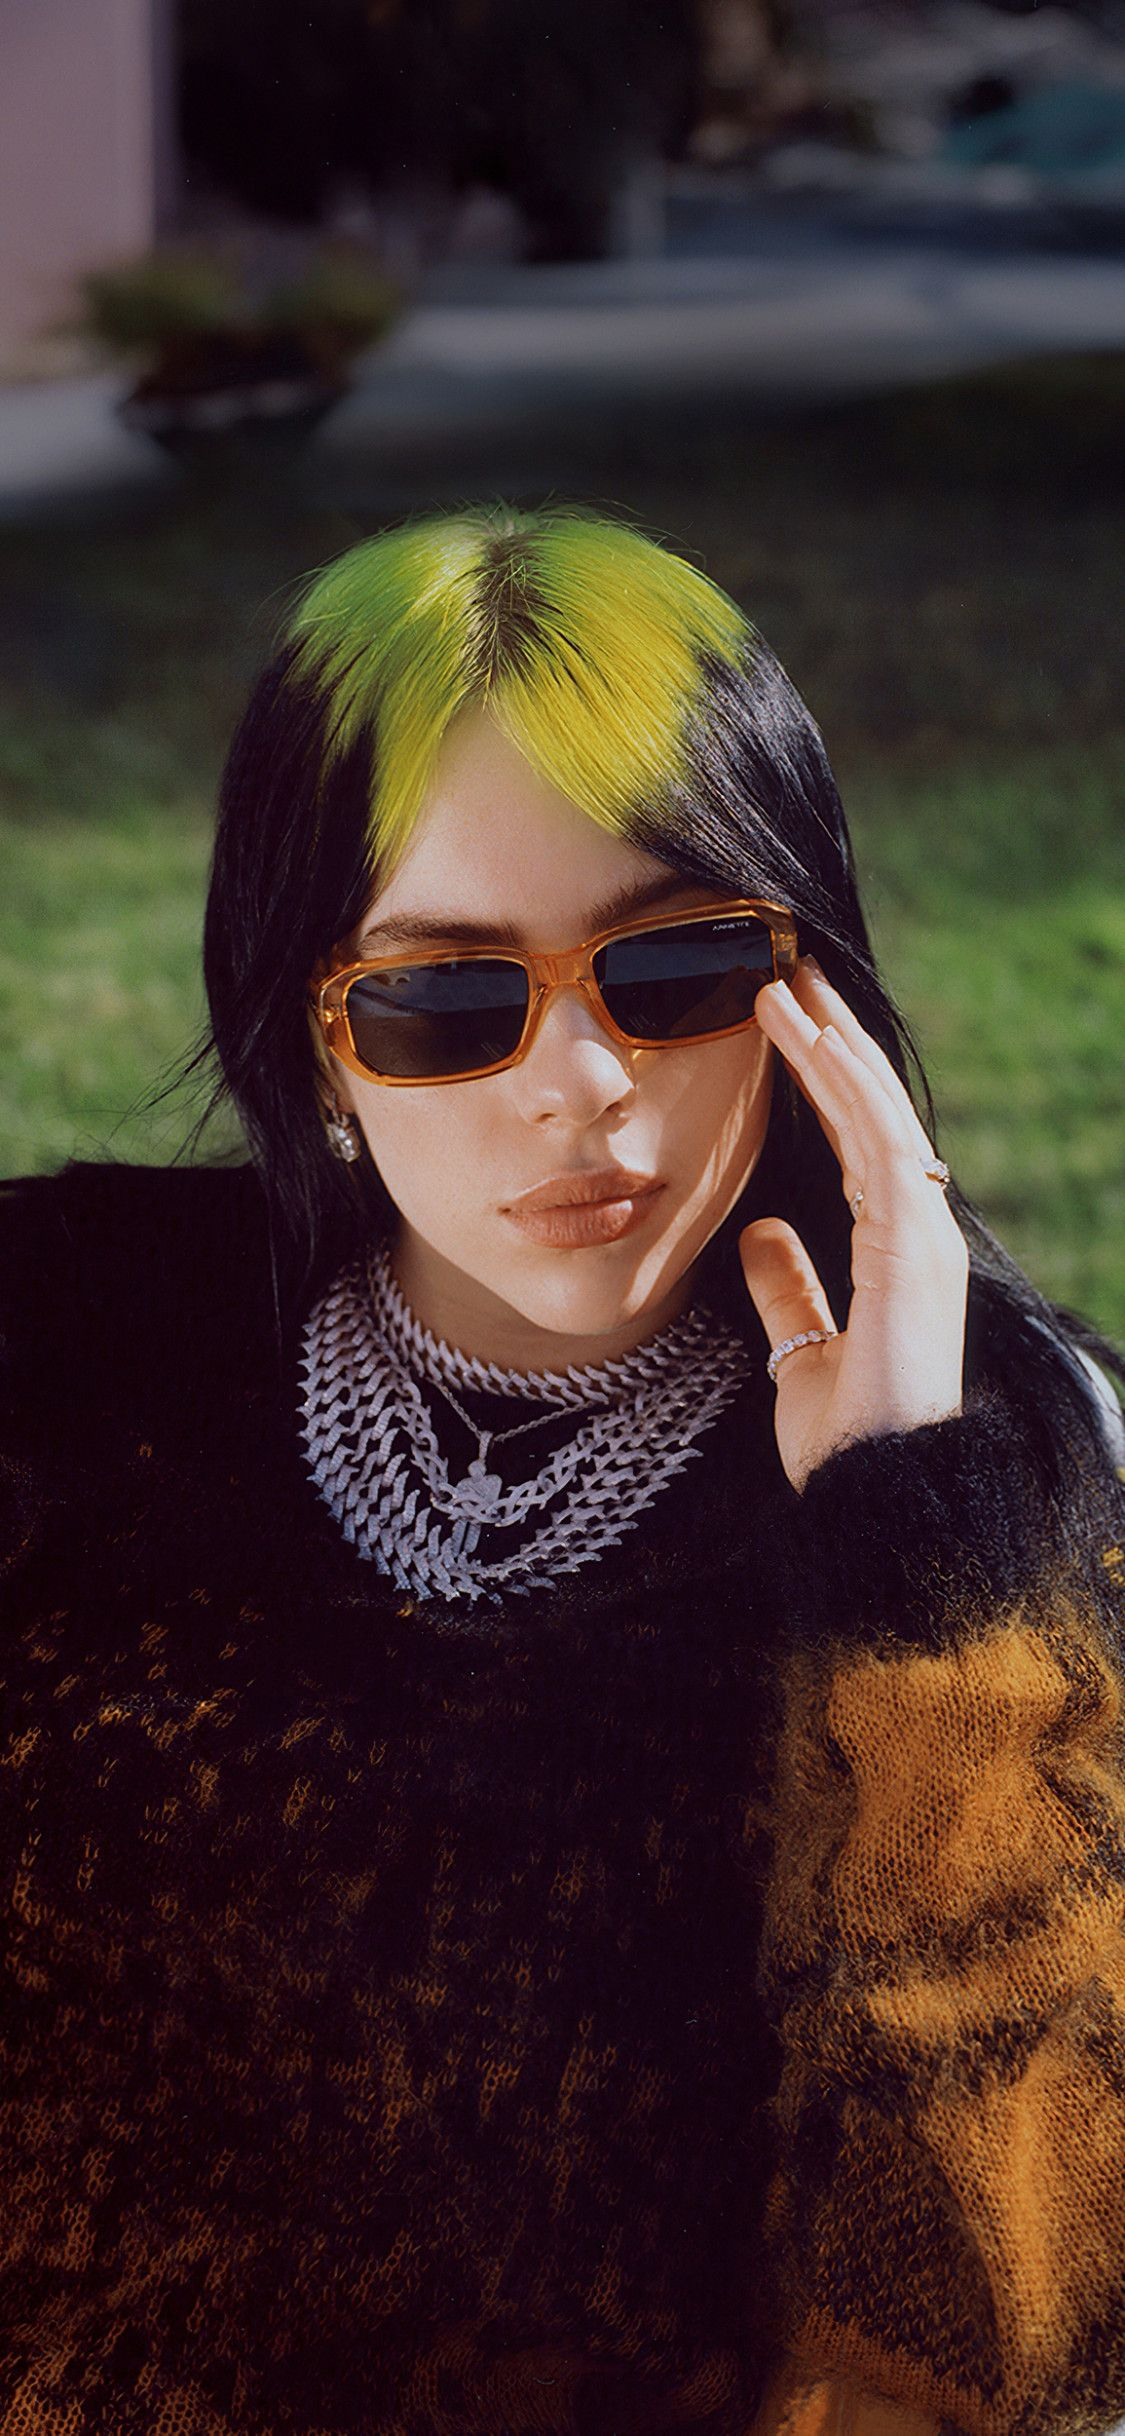 aesthetic billie eilish pictures wallpapers